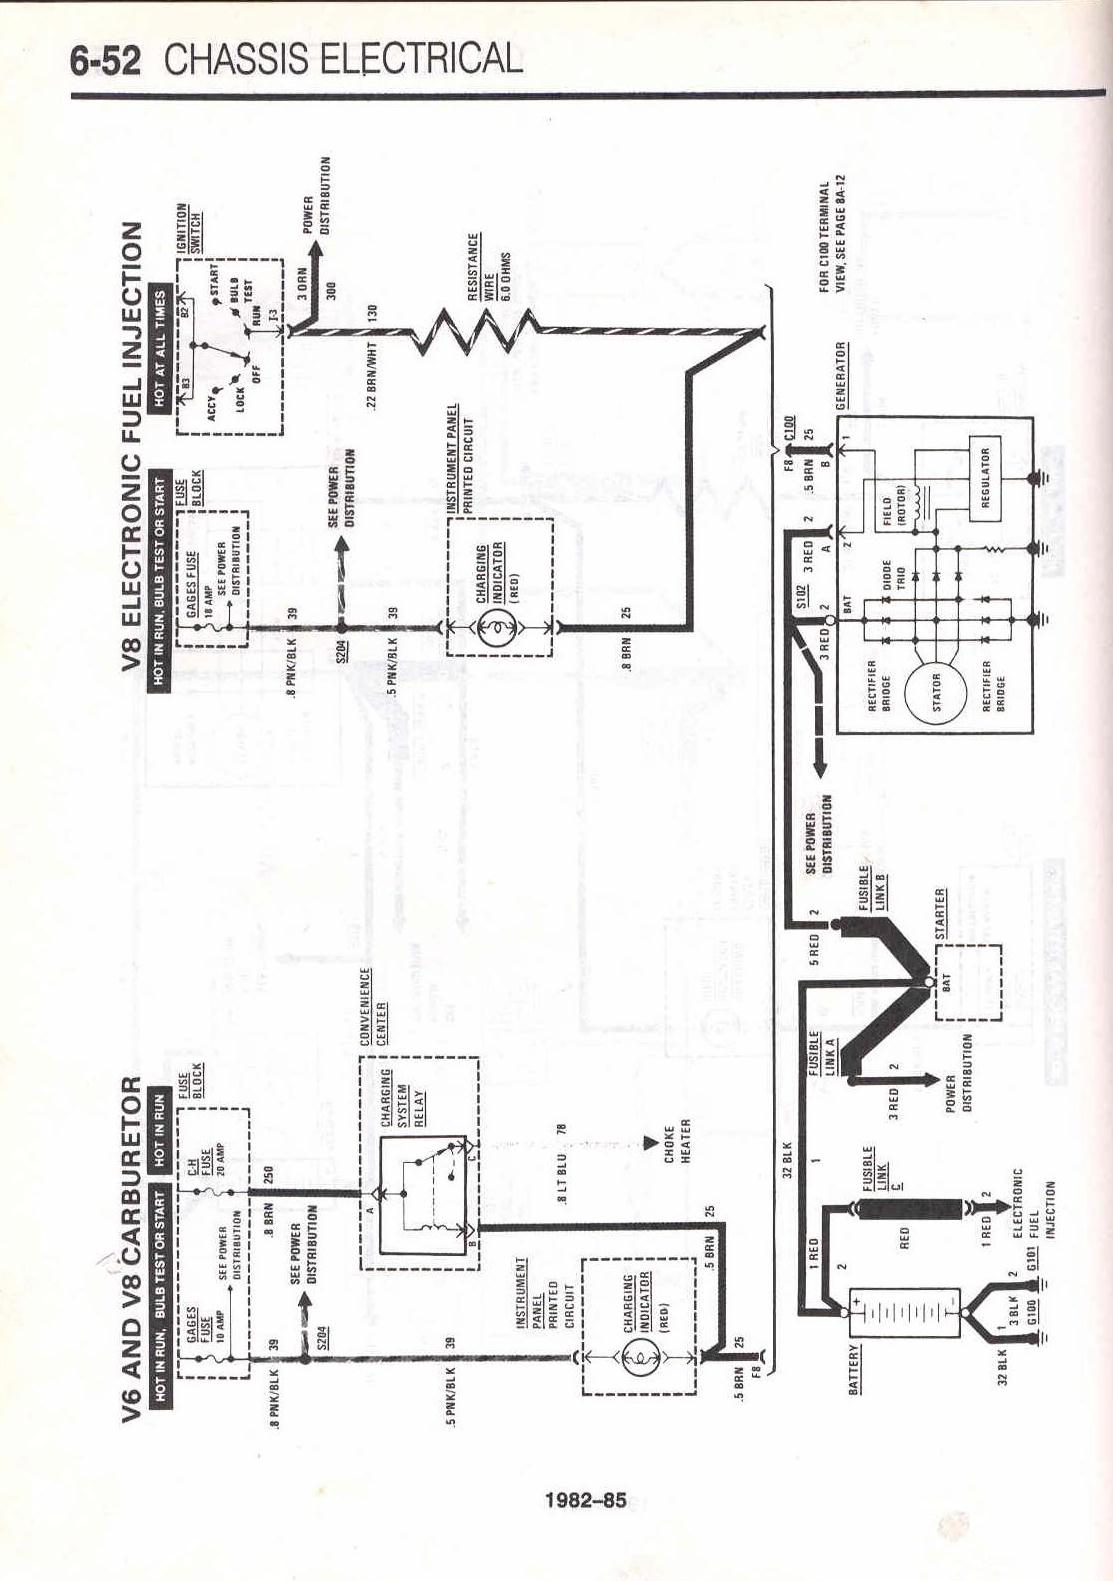 4 wire chevy alternator wiring diagram truck 82 chevy alternator wiring diagram car info